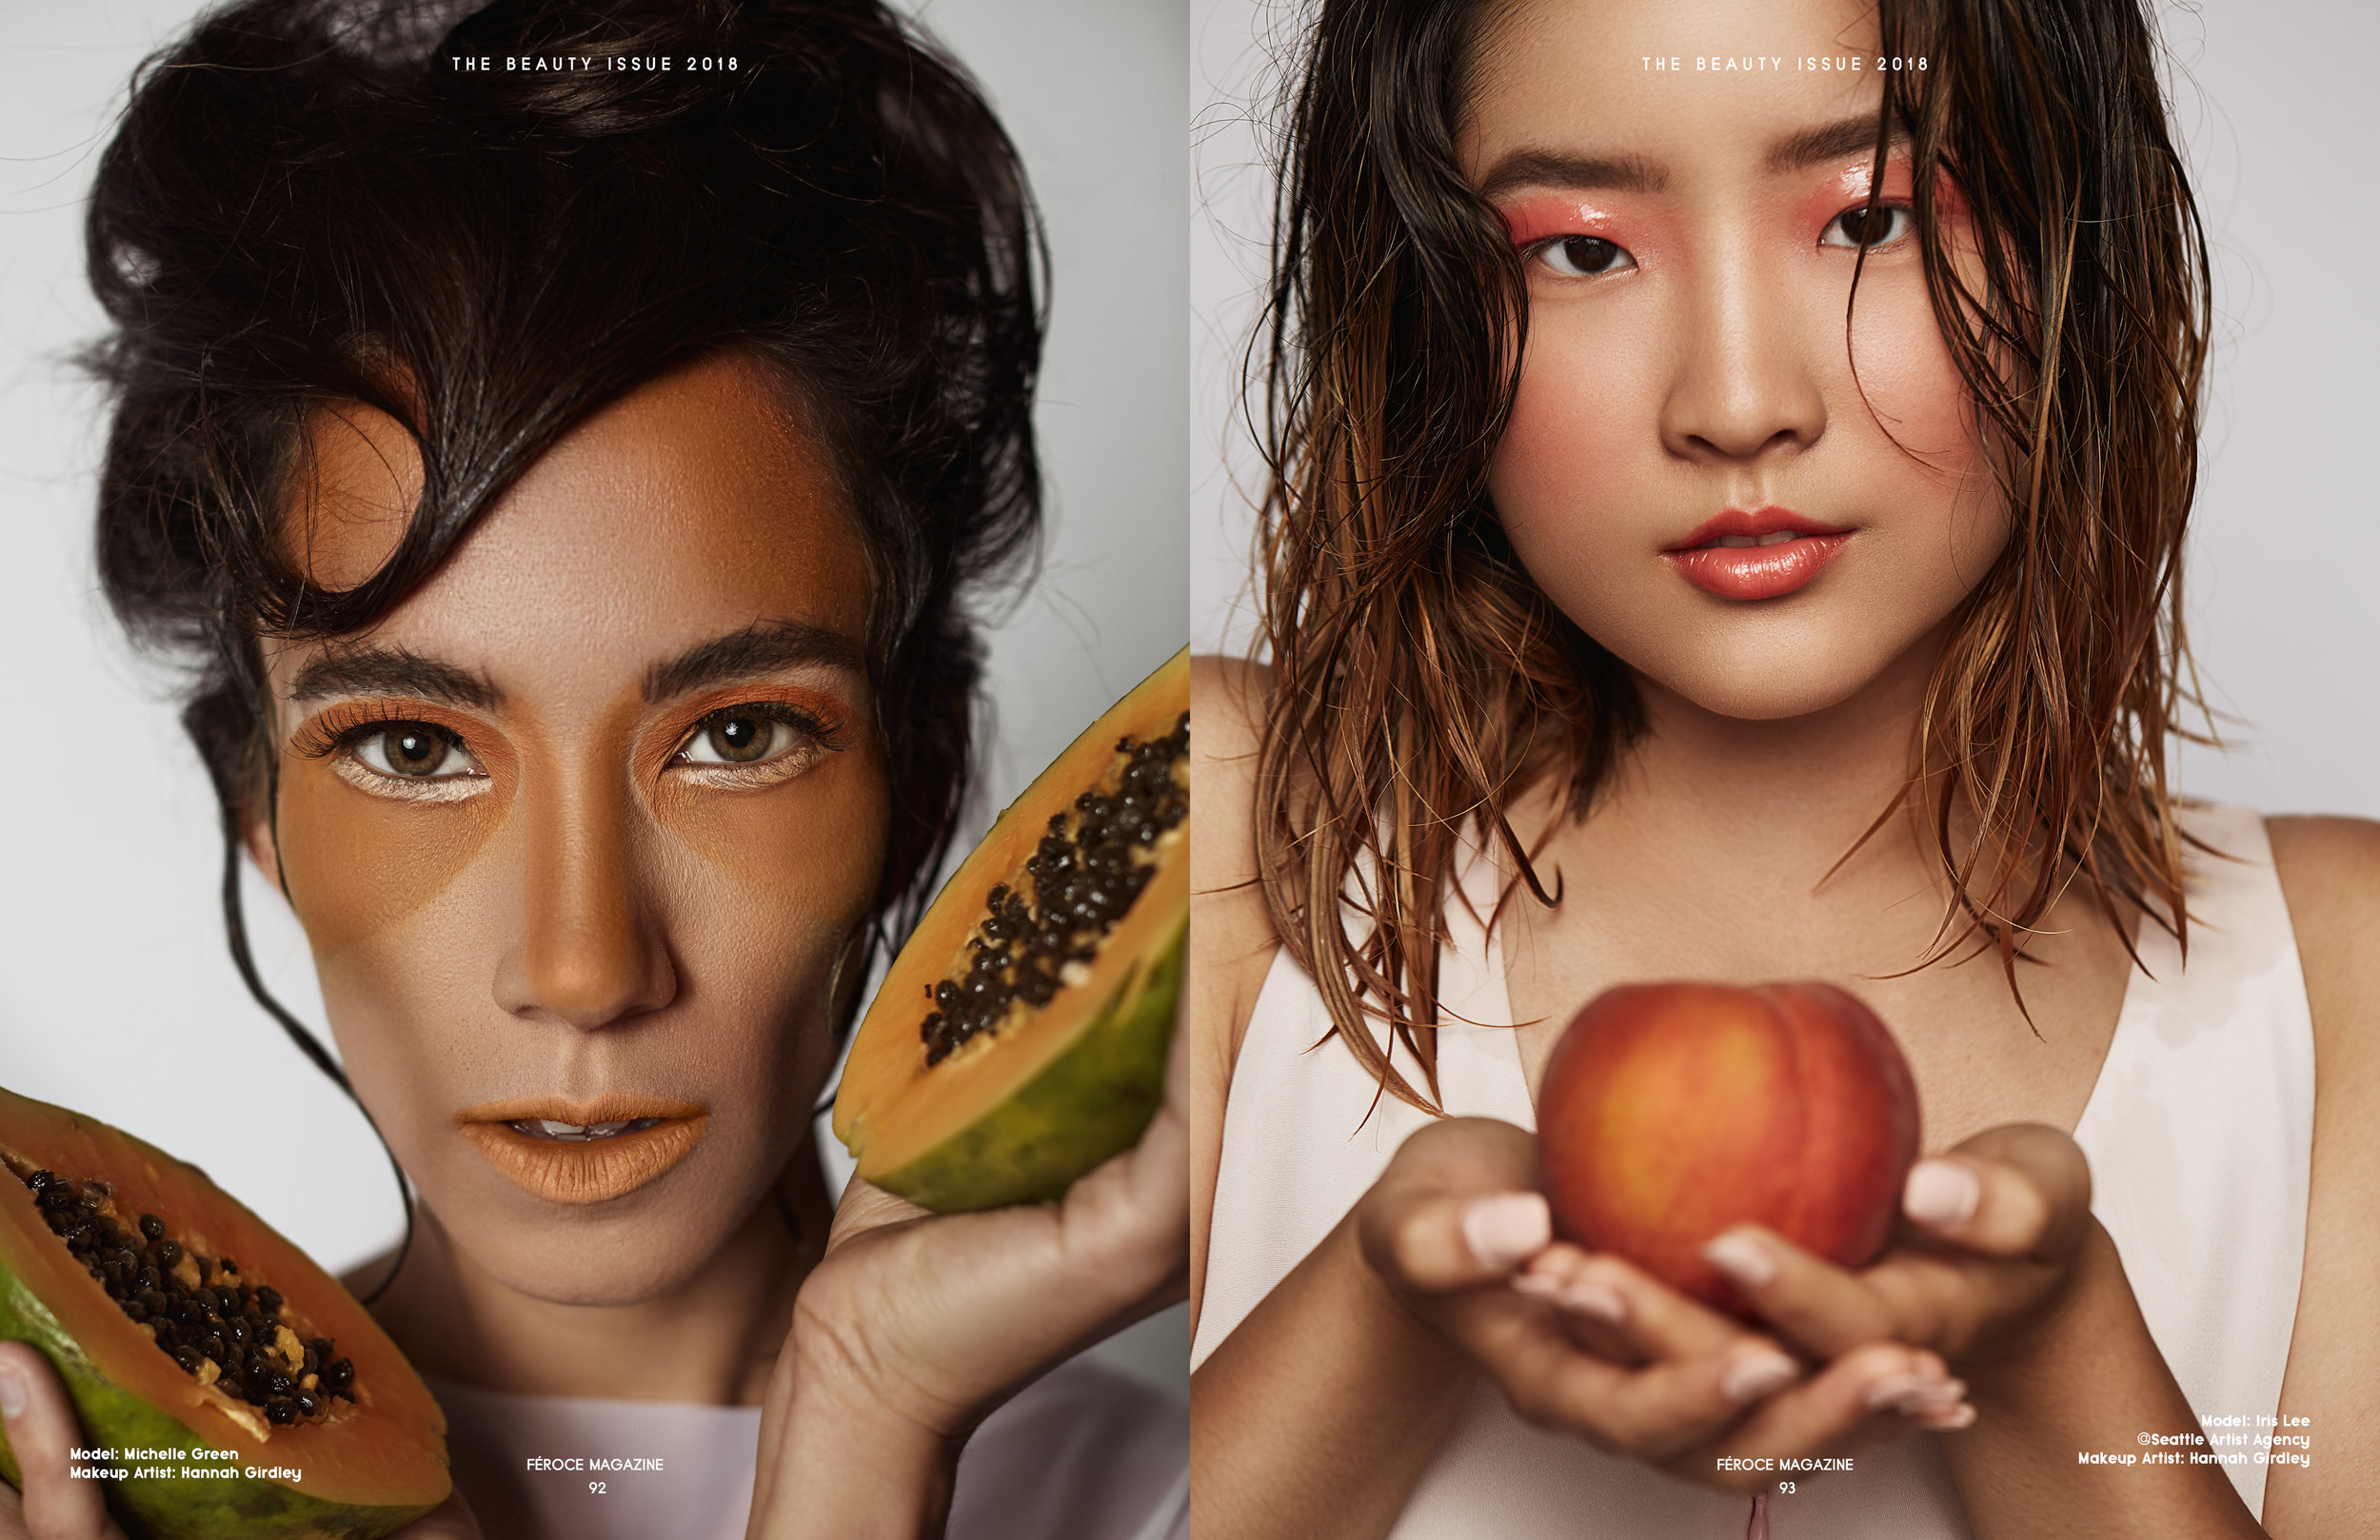 THE BEAUTY ISSUE 201847.jpg